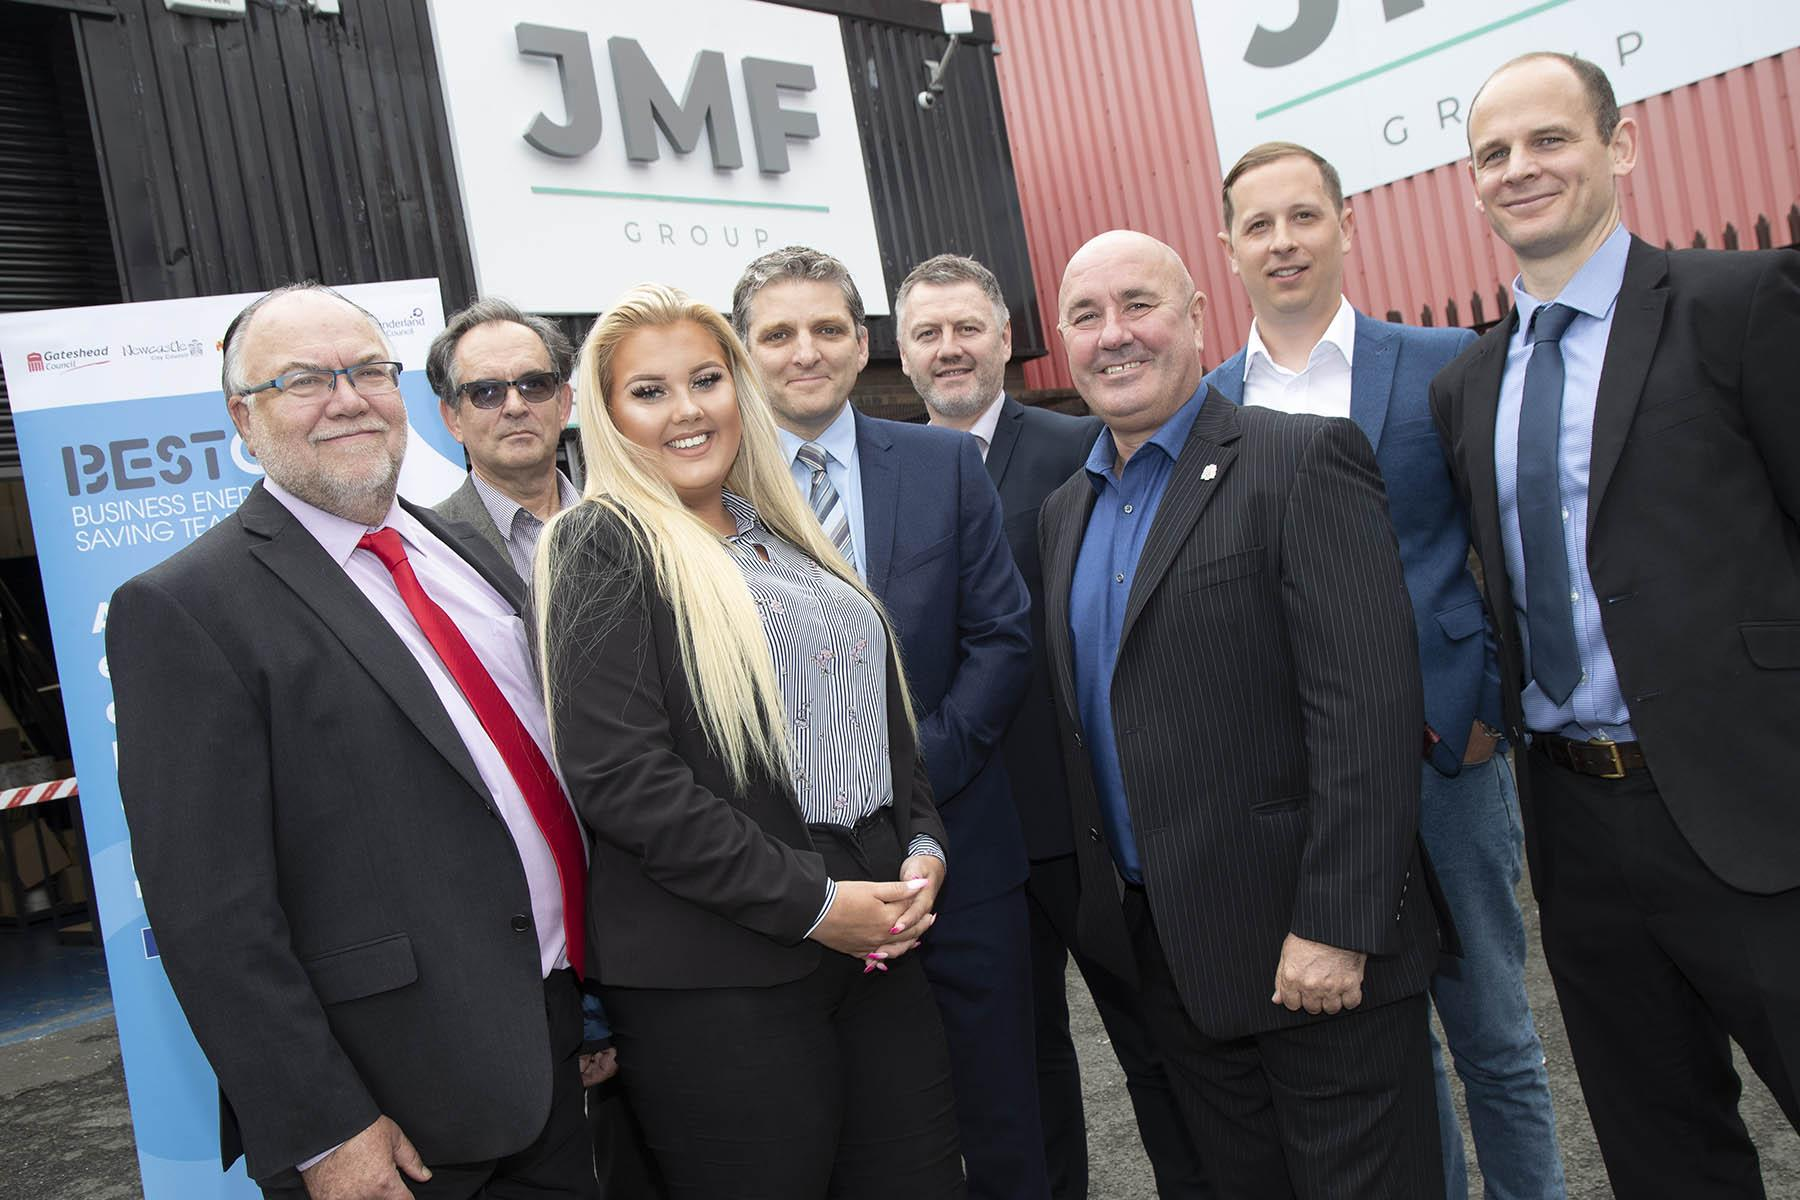 Newcastle and Gateshead councillors with JMF Group.